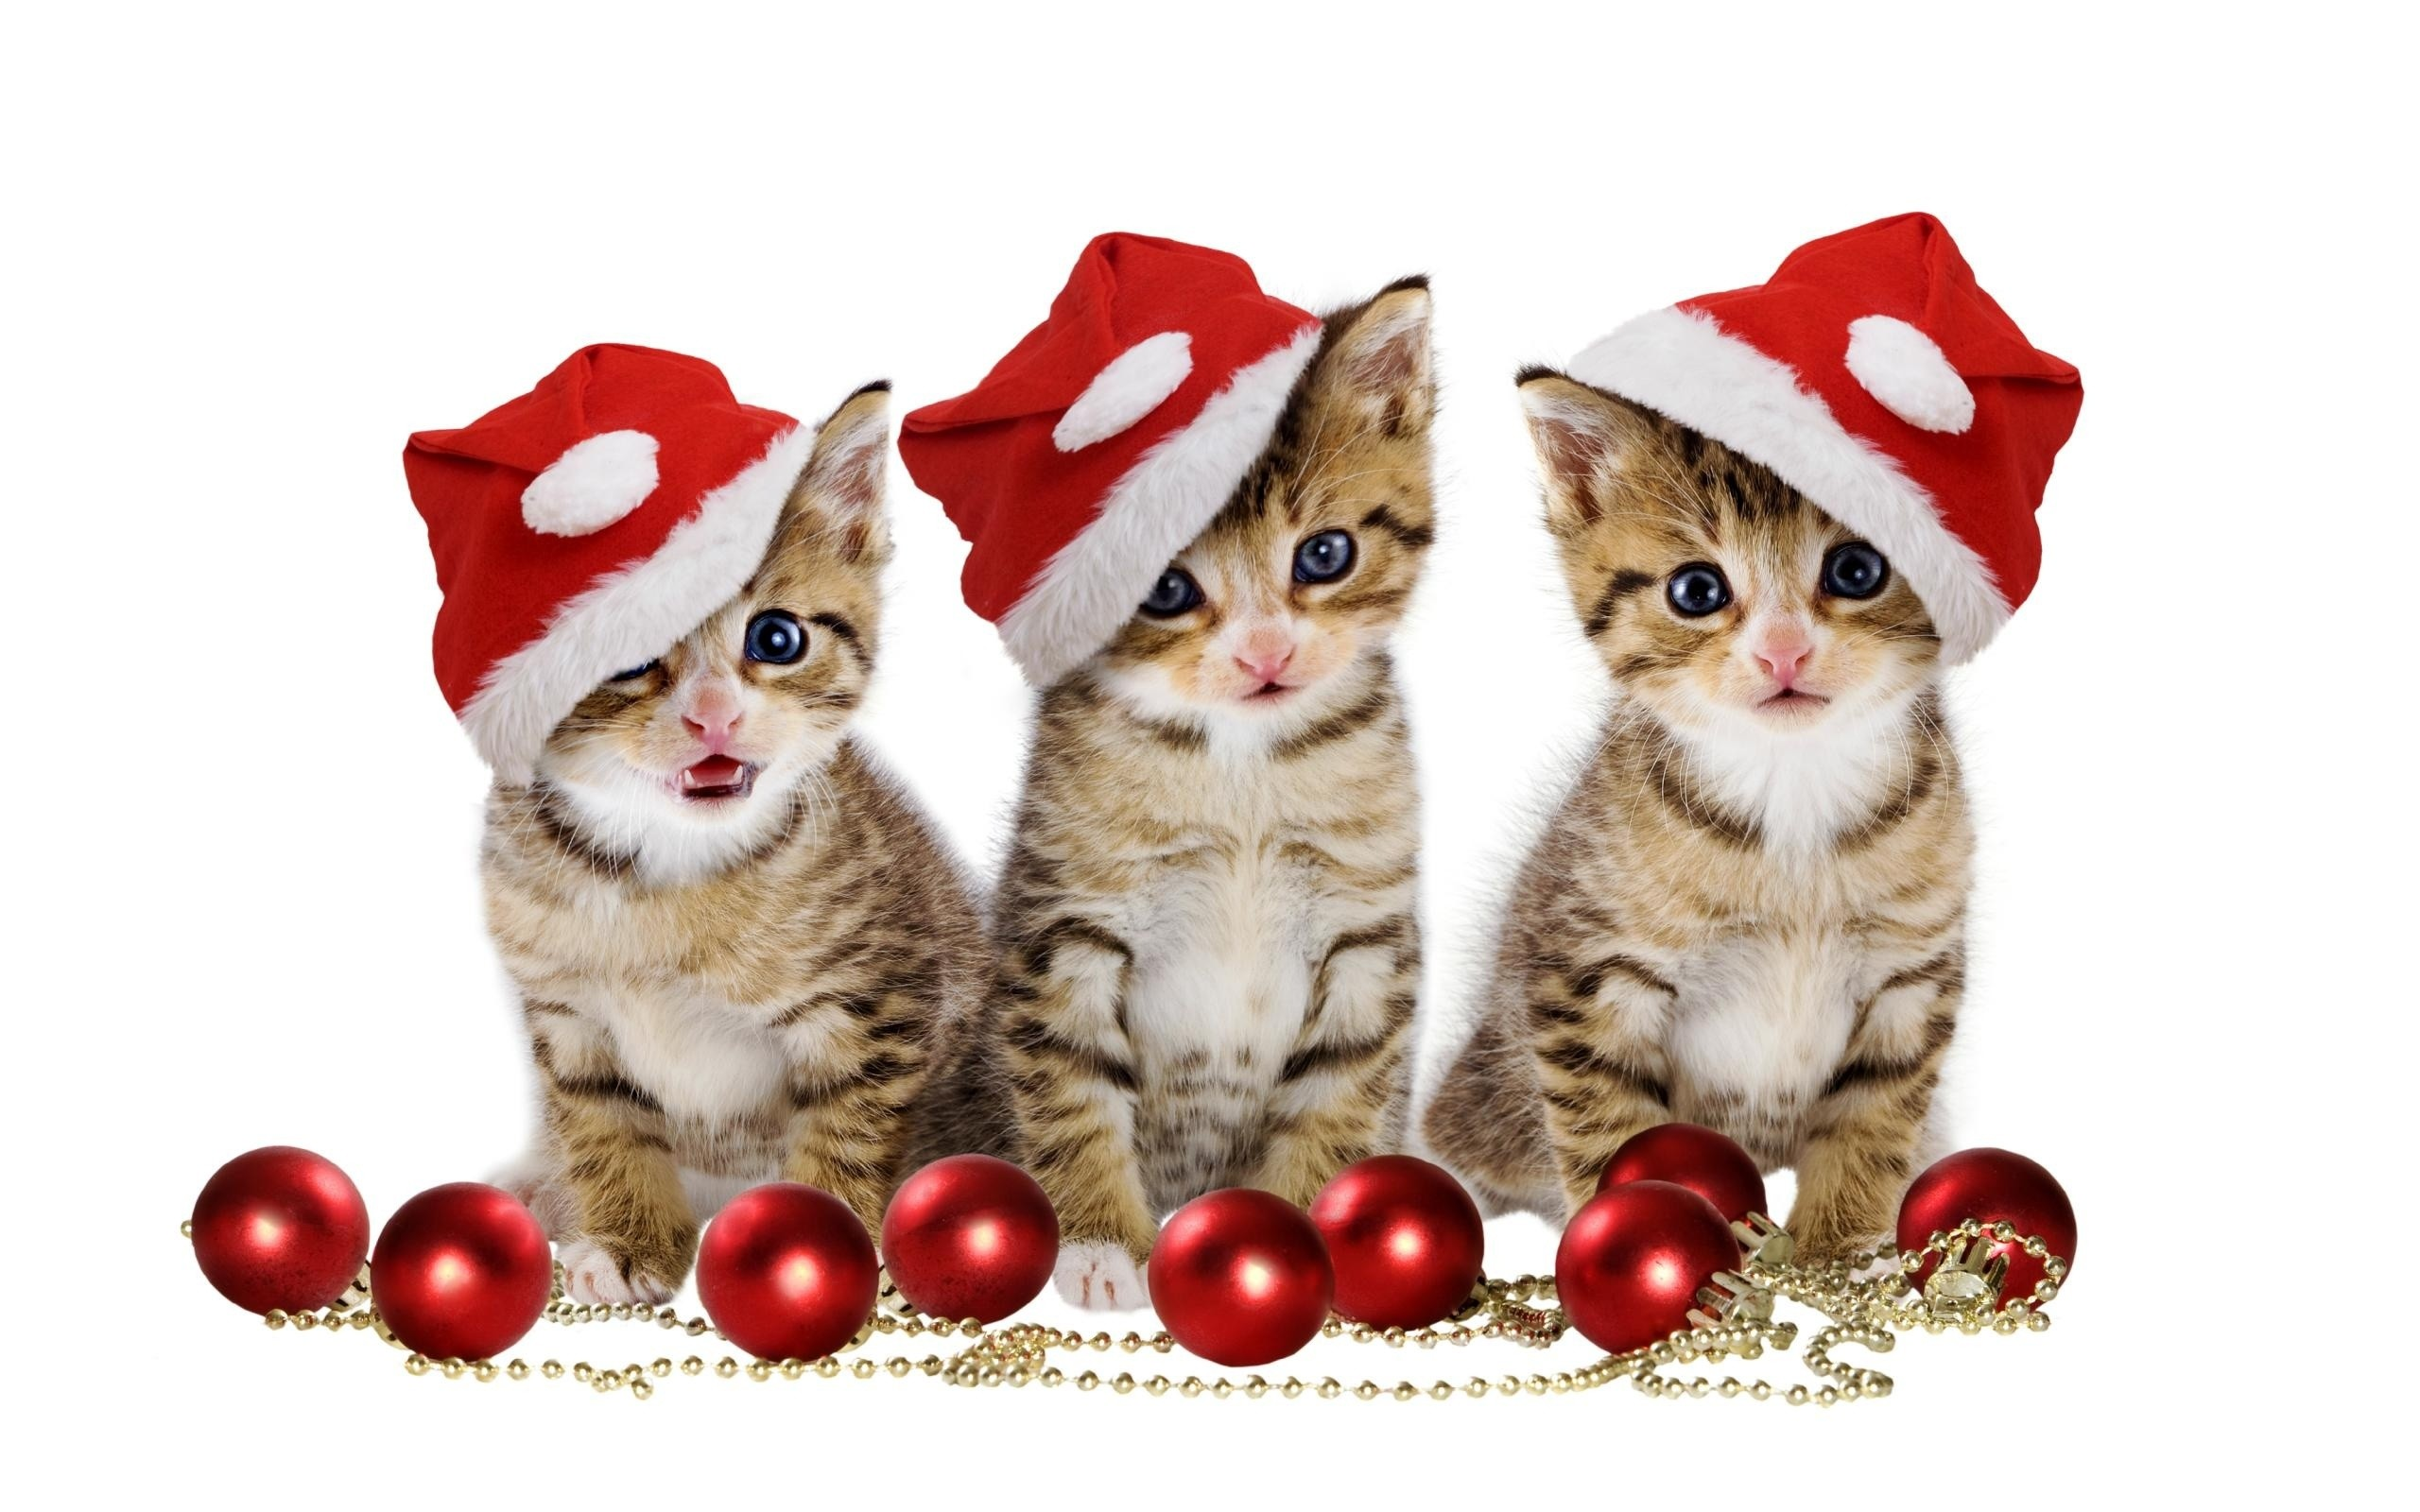 2560x1600 ... Christmas kittens HD Wallpaper